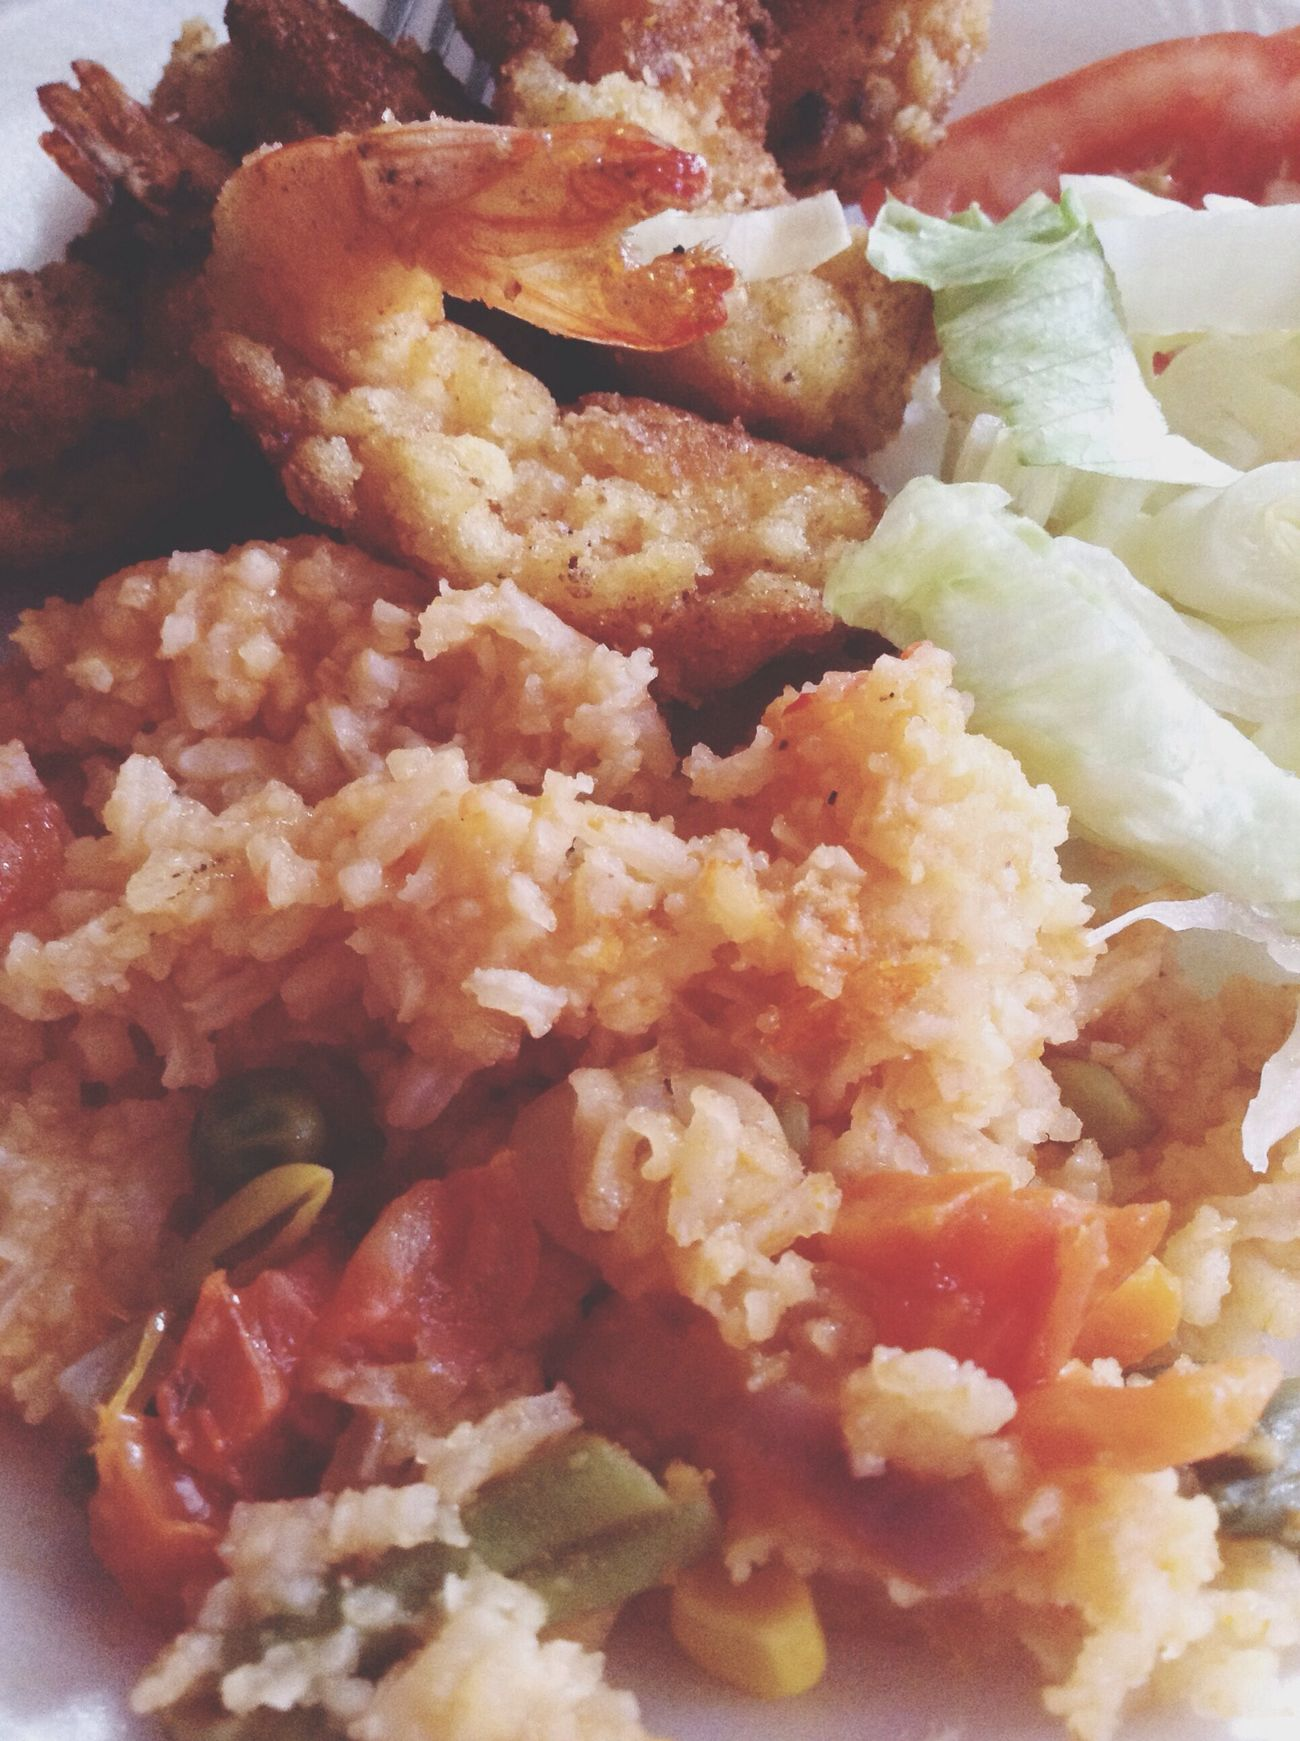 Food Porn Fried Shrimp My Food Is The Bomb.com